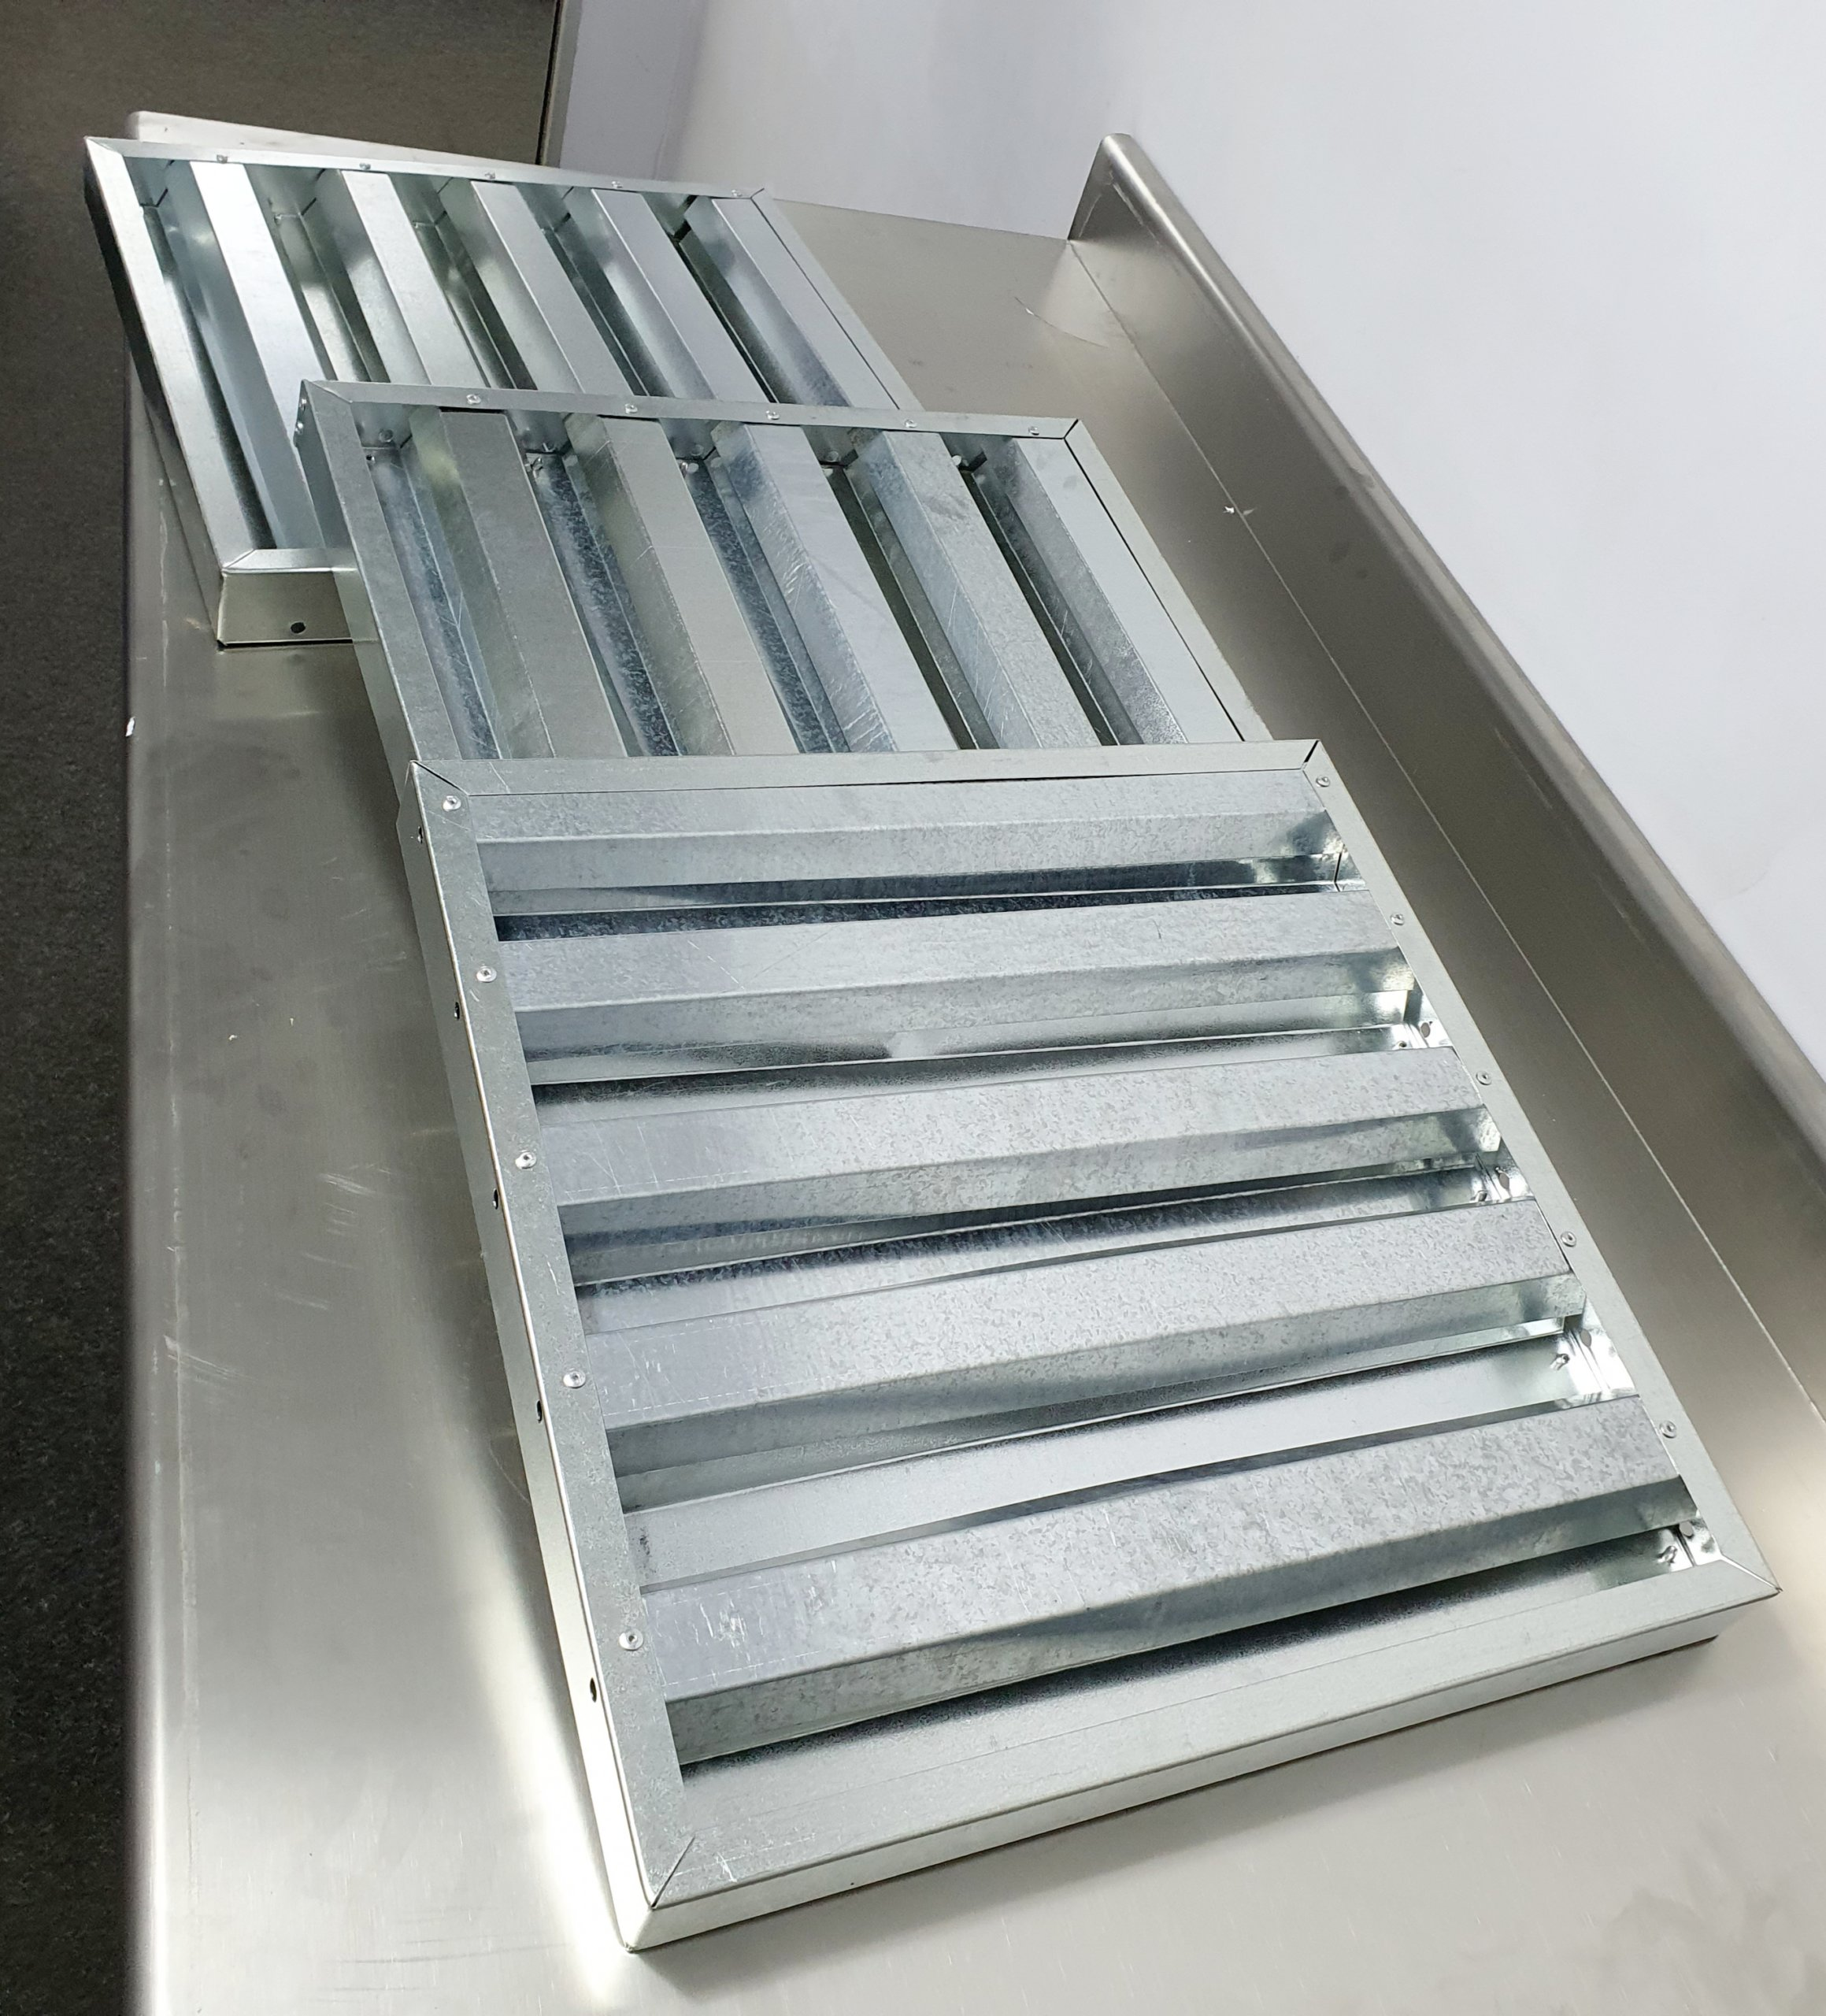 Canopy Extractor Kitchen Extractor Canopy Extractor Canopy For Sale Commercial Kitchen Extractor Sunrose Online Jhb Commercial Bakery Butchery Catering Refrigeration Equipment